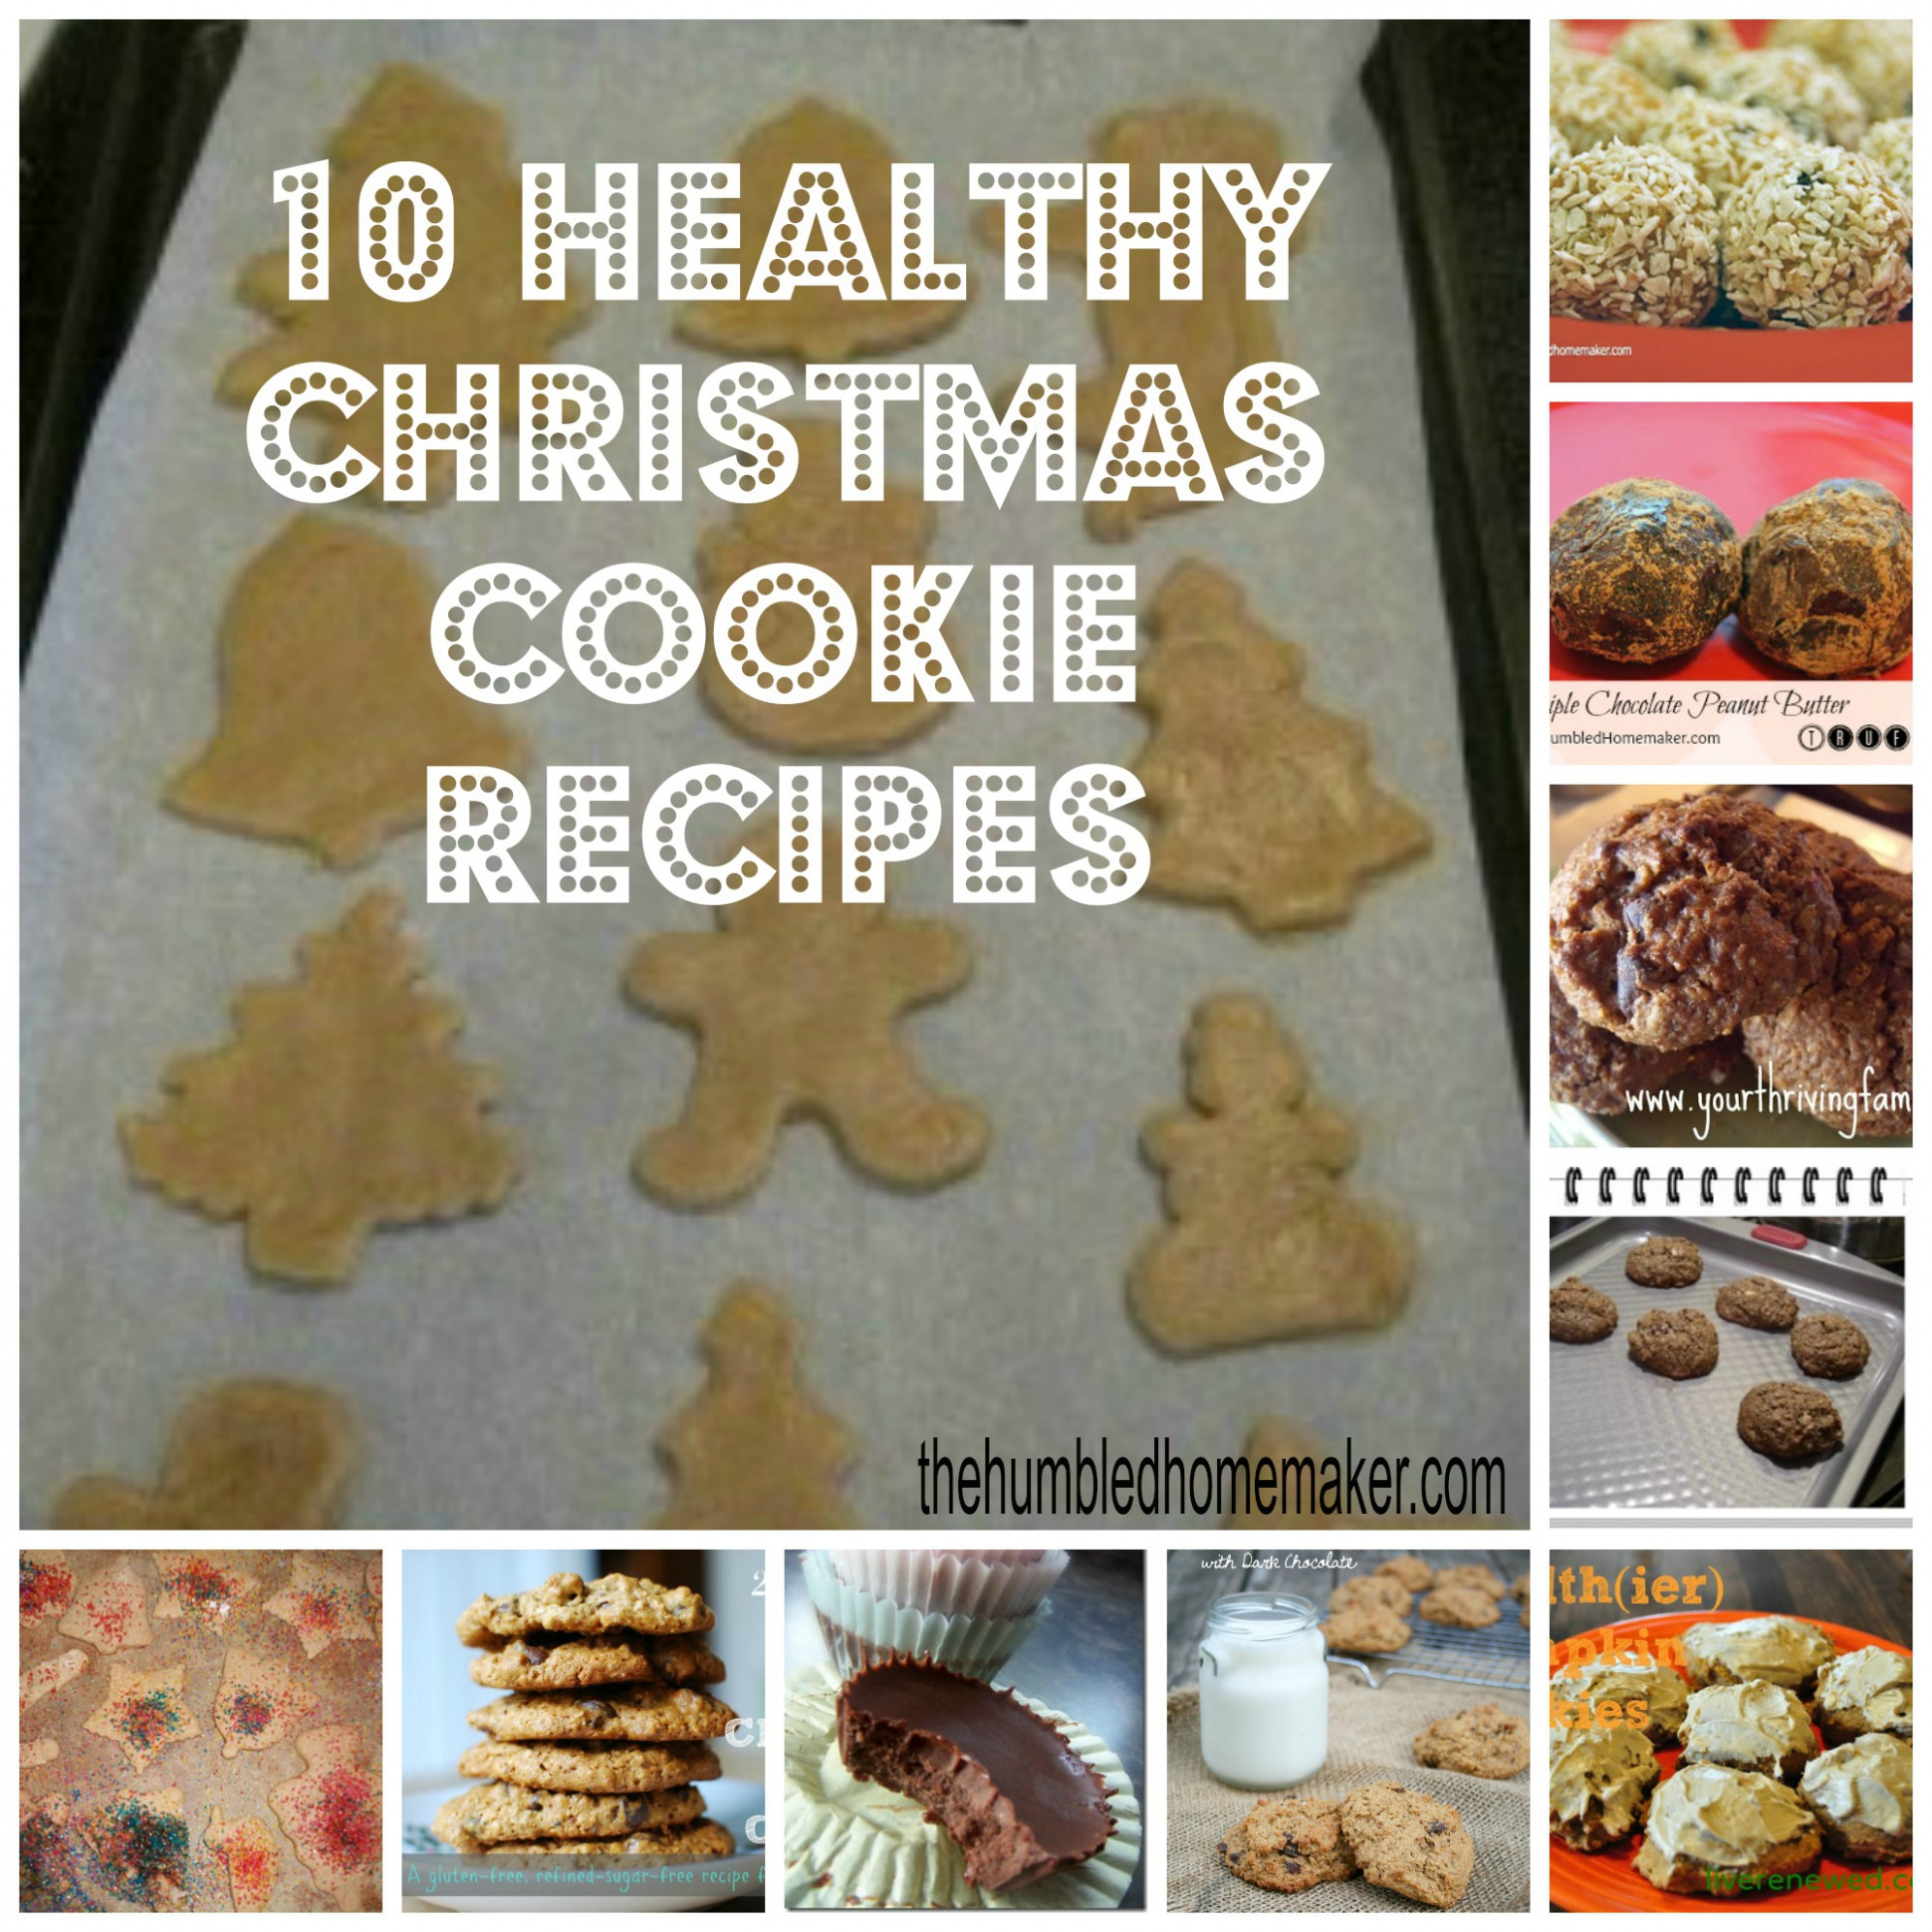 10 Healthy Christmas Cookie Recipes | The Humbled Homemaker - healthy xmas cookies recipes